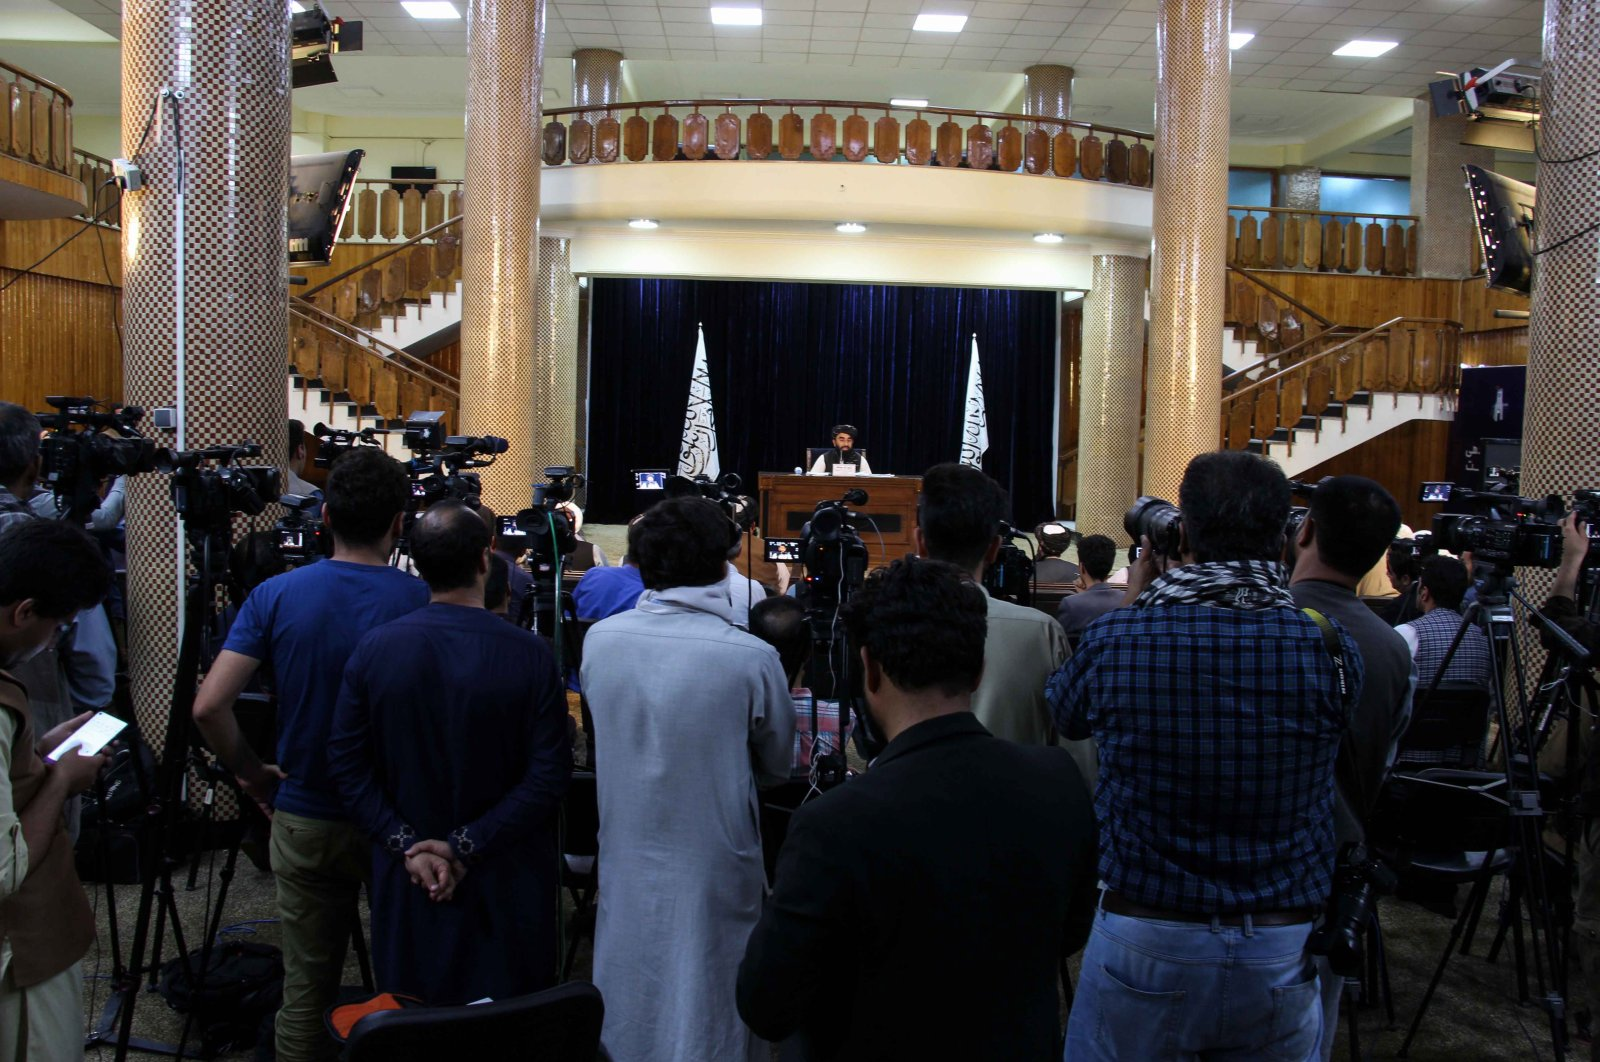 Zabhiullah Mujahid, the Taliban spokesperson, talks with journalists as he announces the interim government during a press conference in Kabul, Afghanistan, Sept. 7, 2021. (EPA Photo)